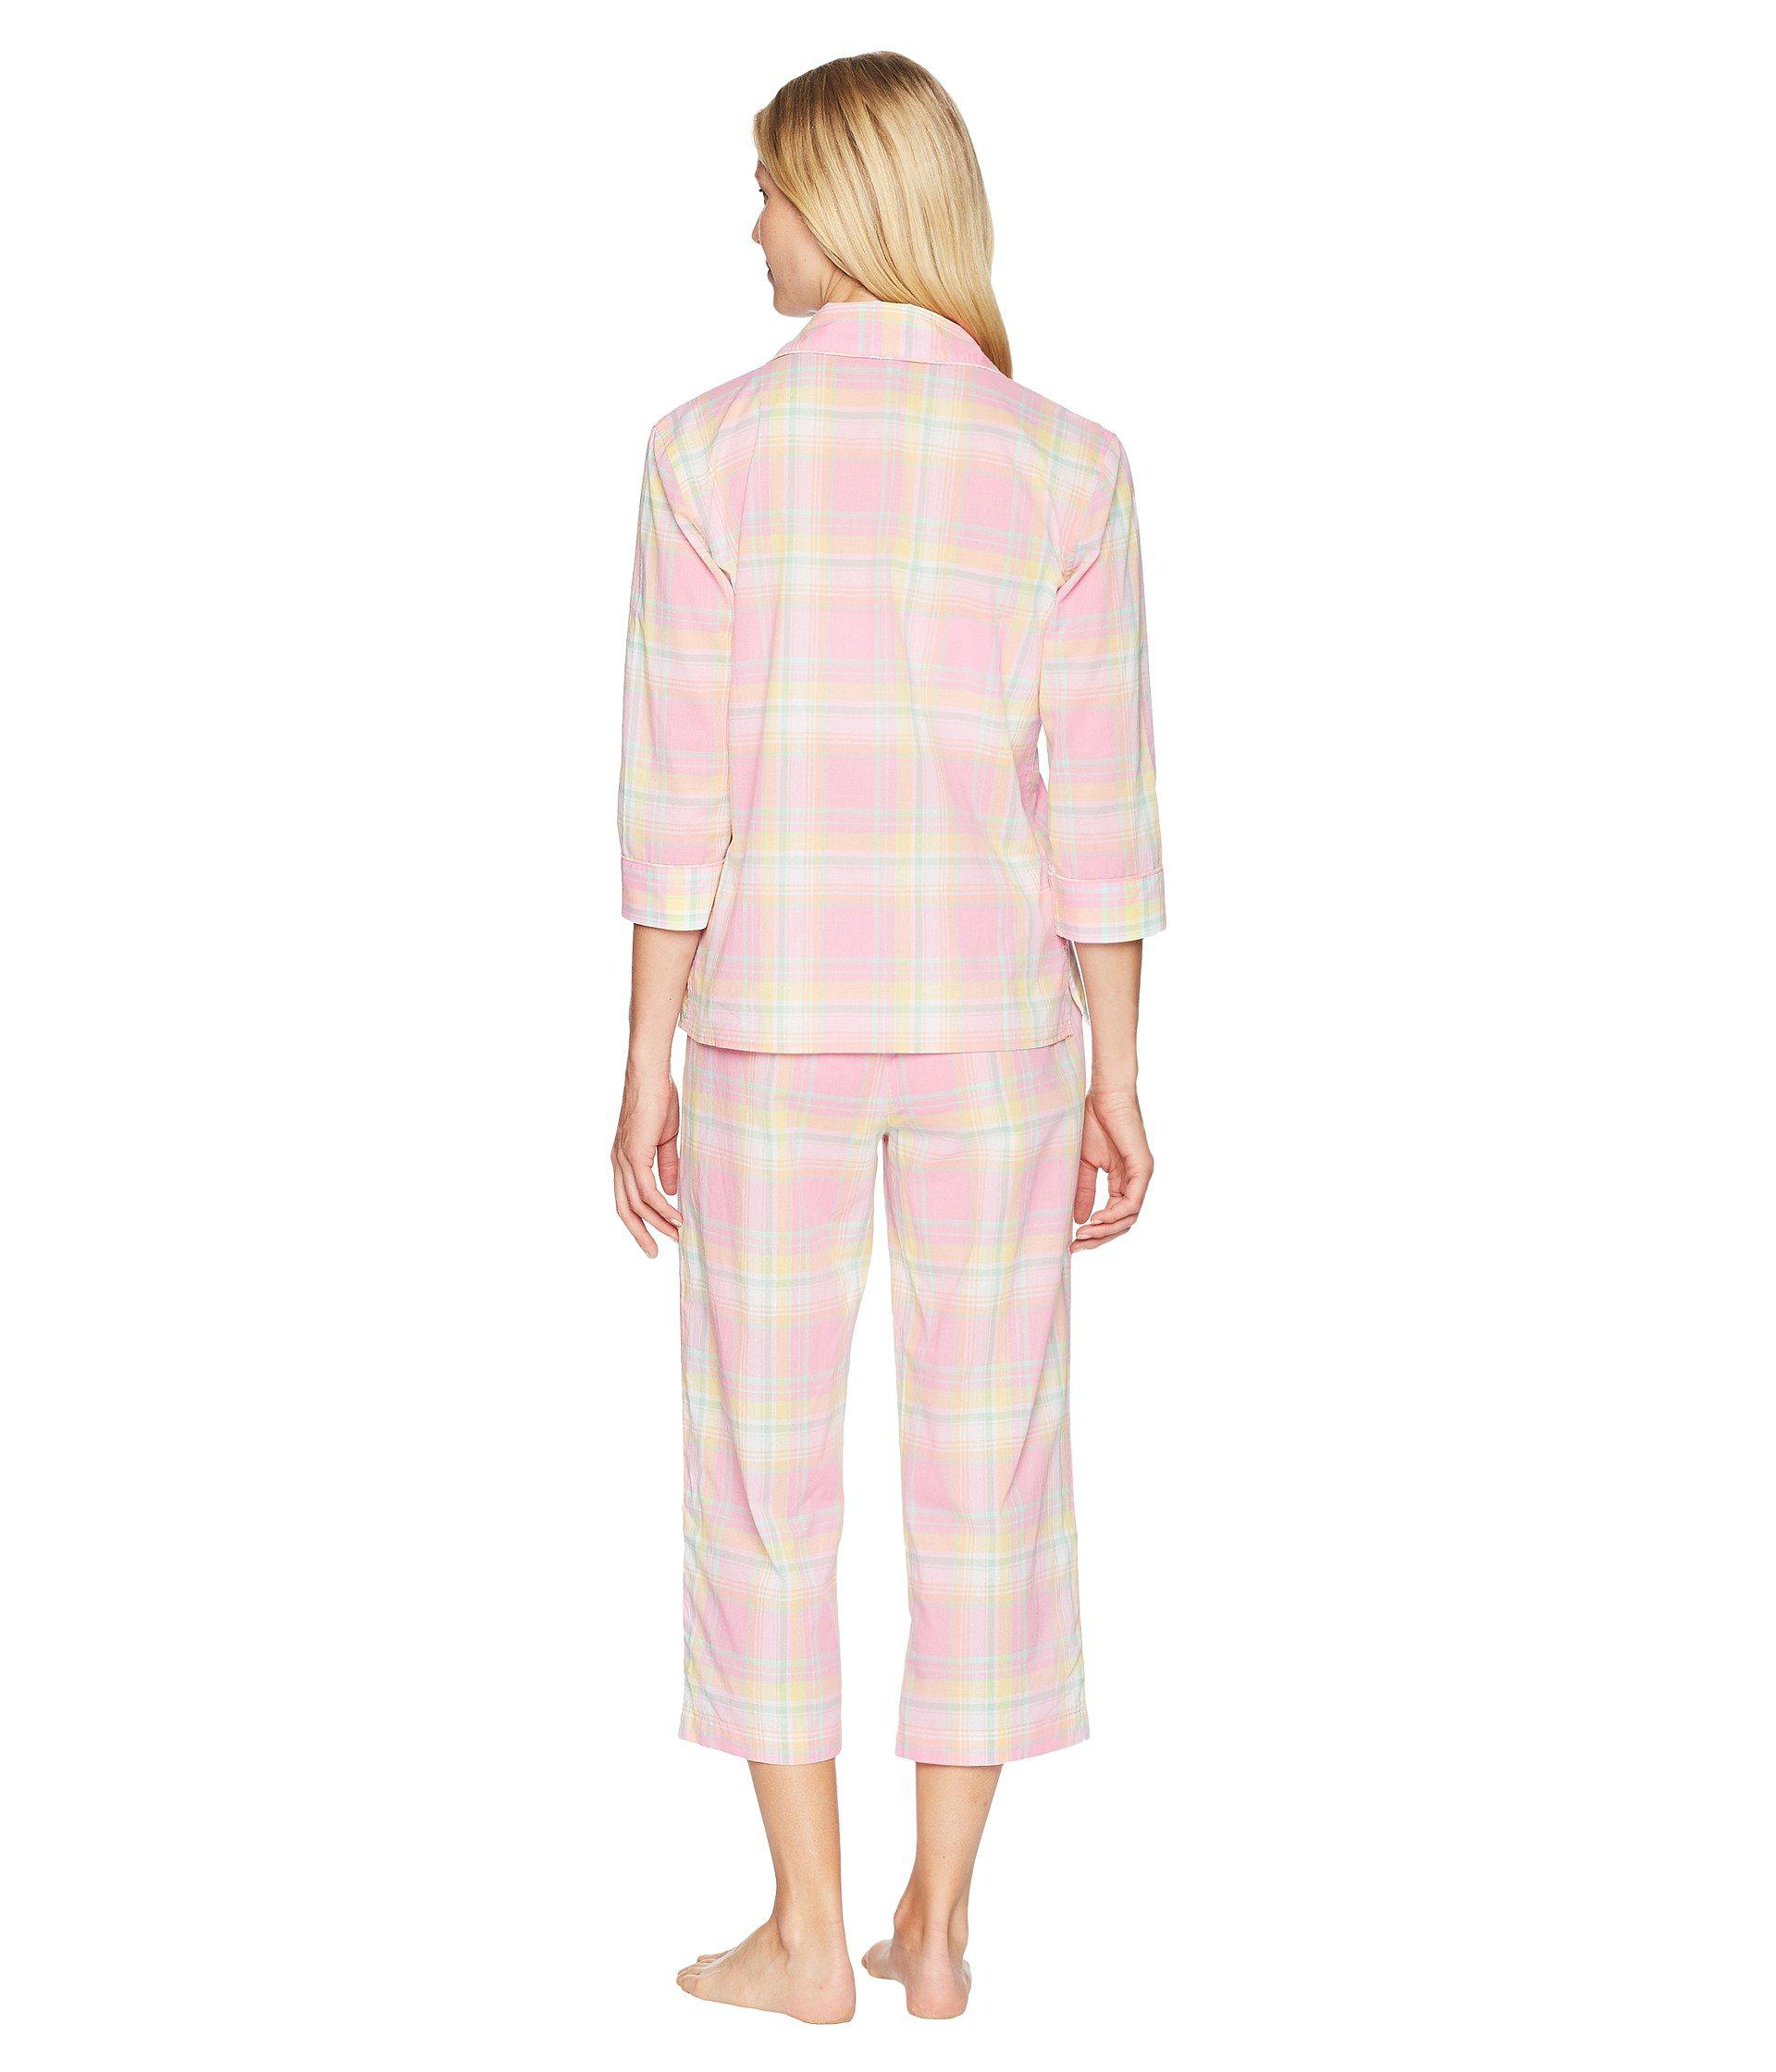 Lyst - Lauren by Ralph Lauren 3 4 Sleeve Notch Collar Capris Pajama ... 2bd6c2724c2